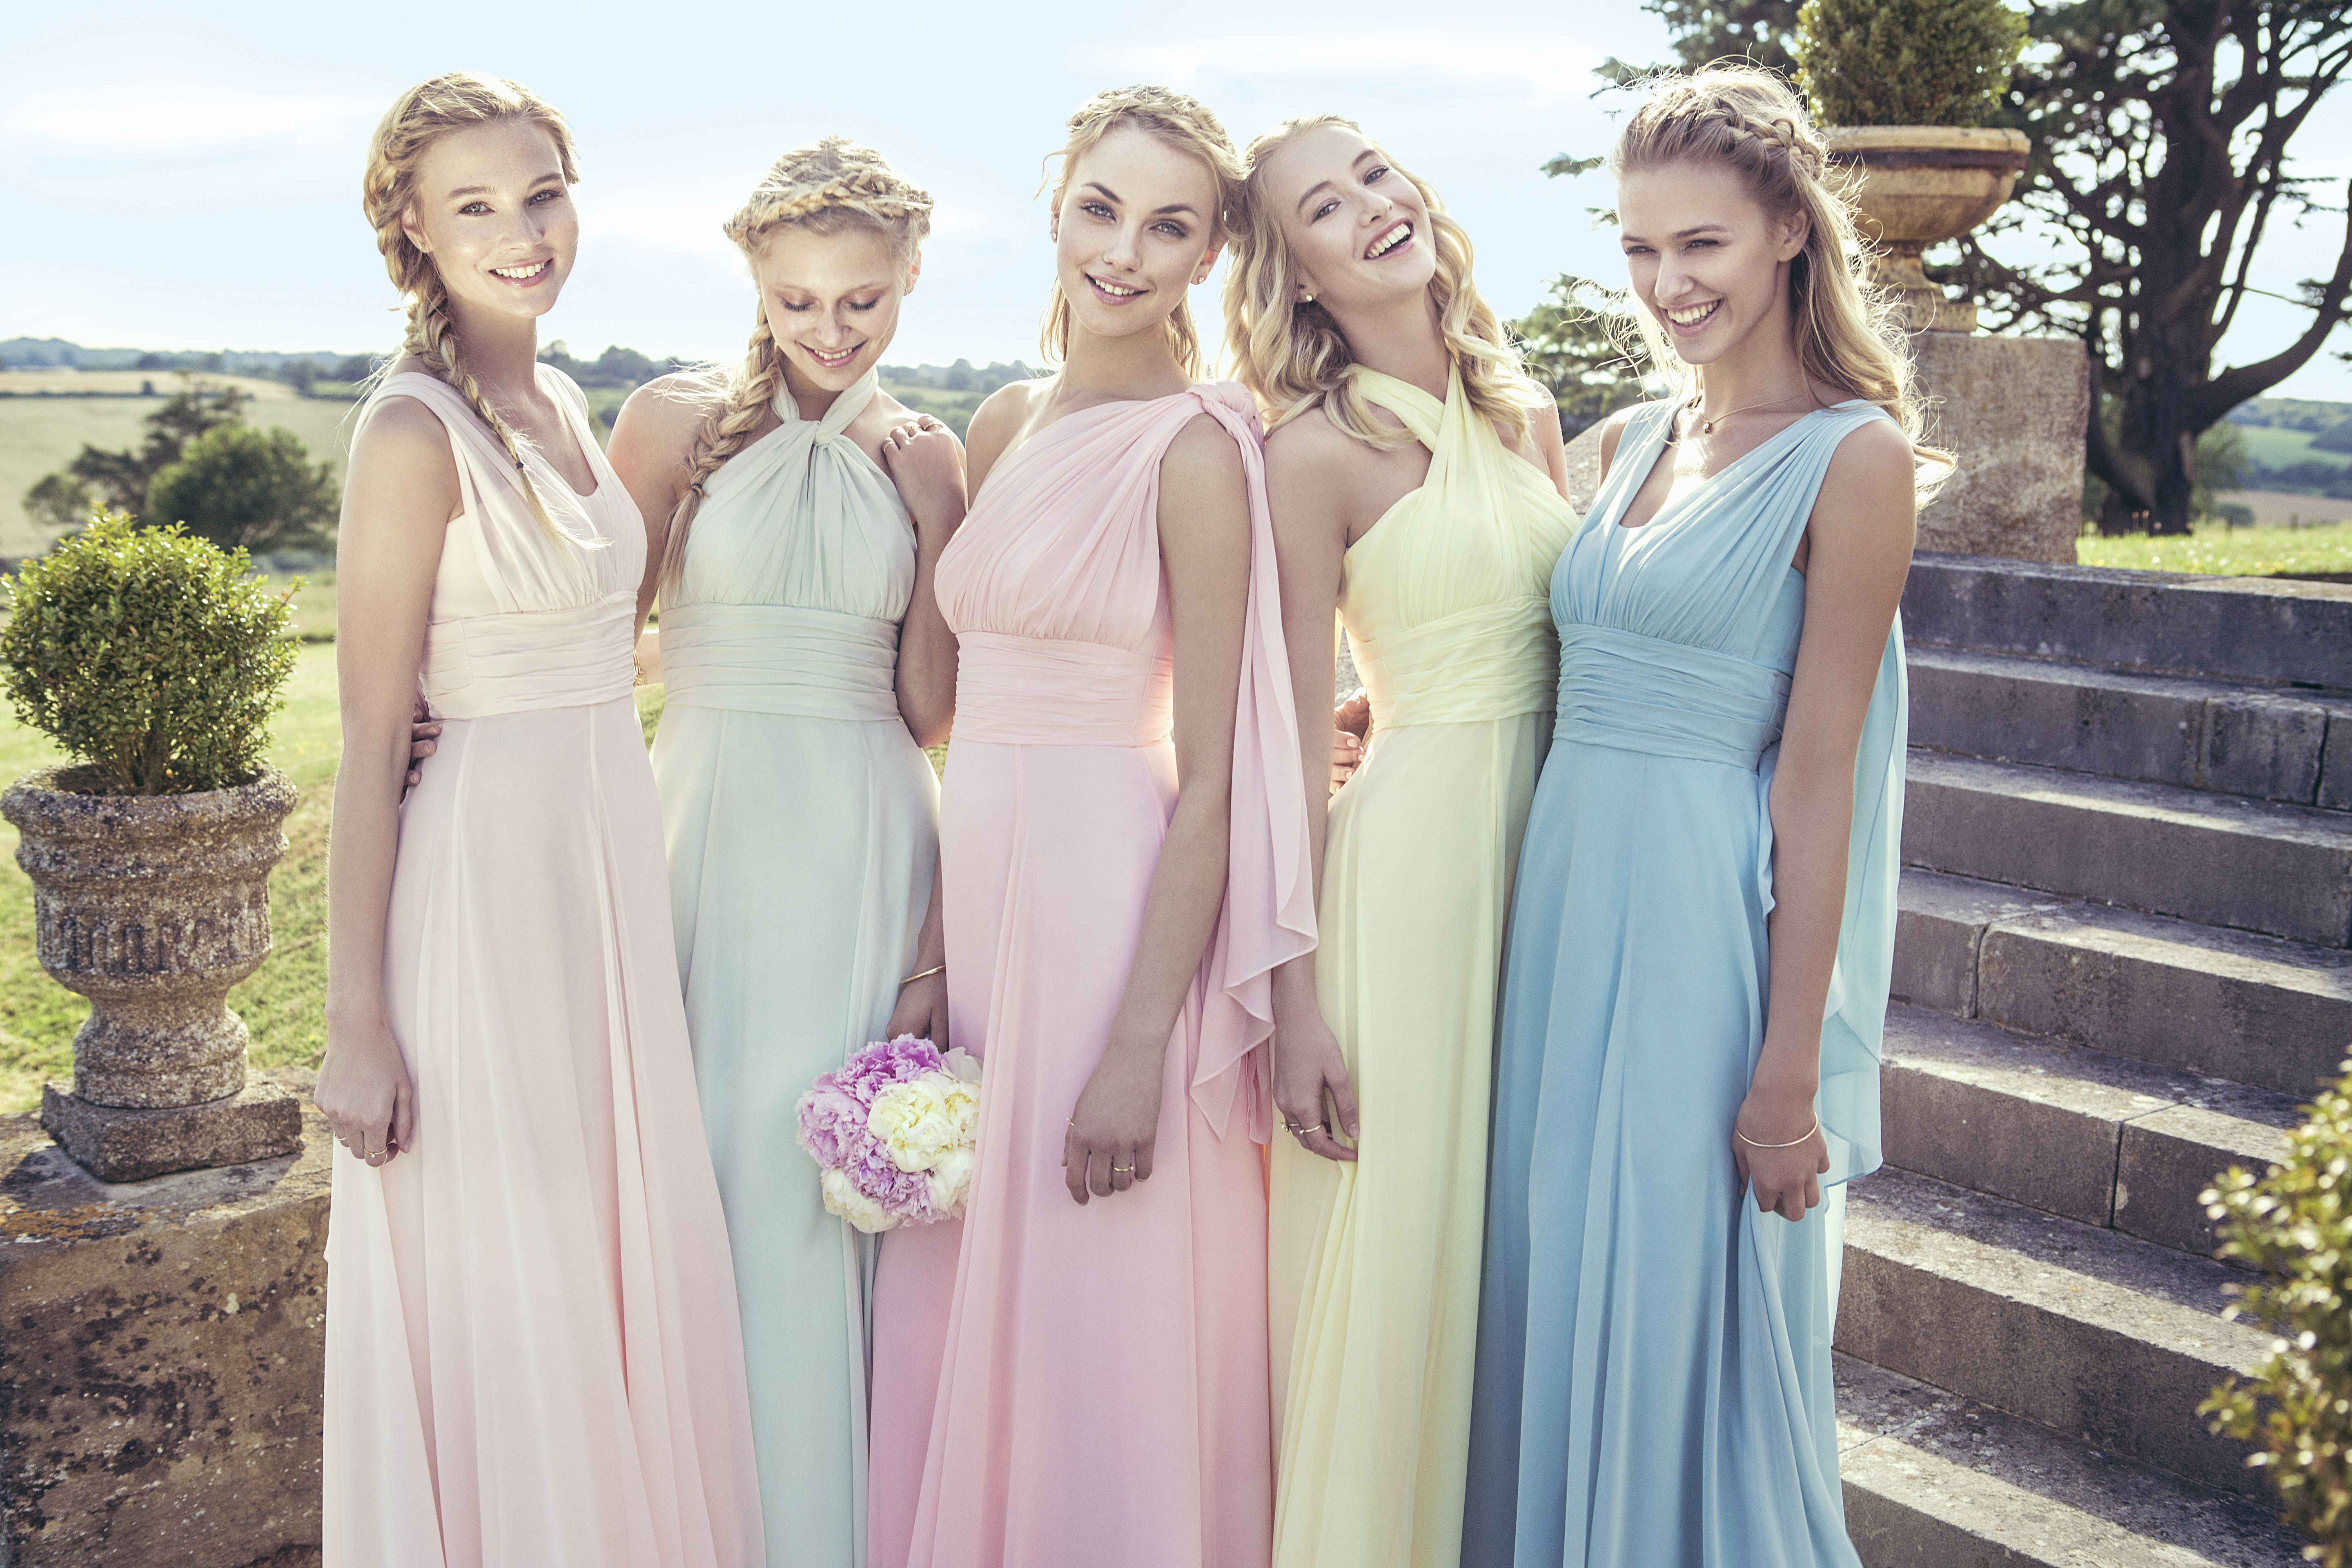 8 beautiful bridesmaid dress trends for 2015 weddings beautiful bridesmaid ombrellifo Image collections